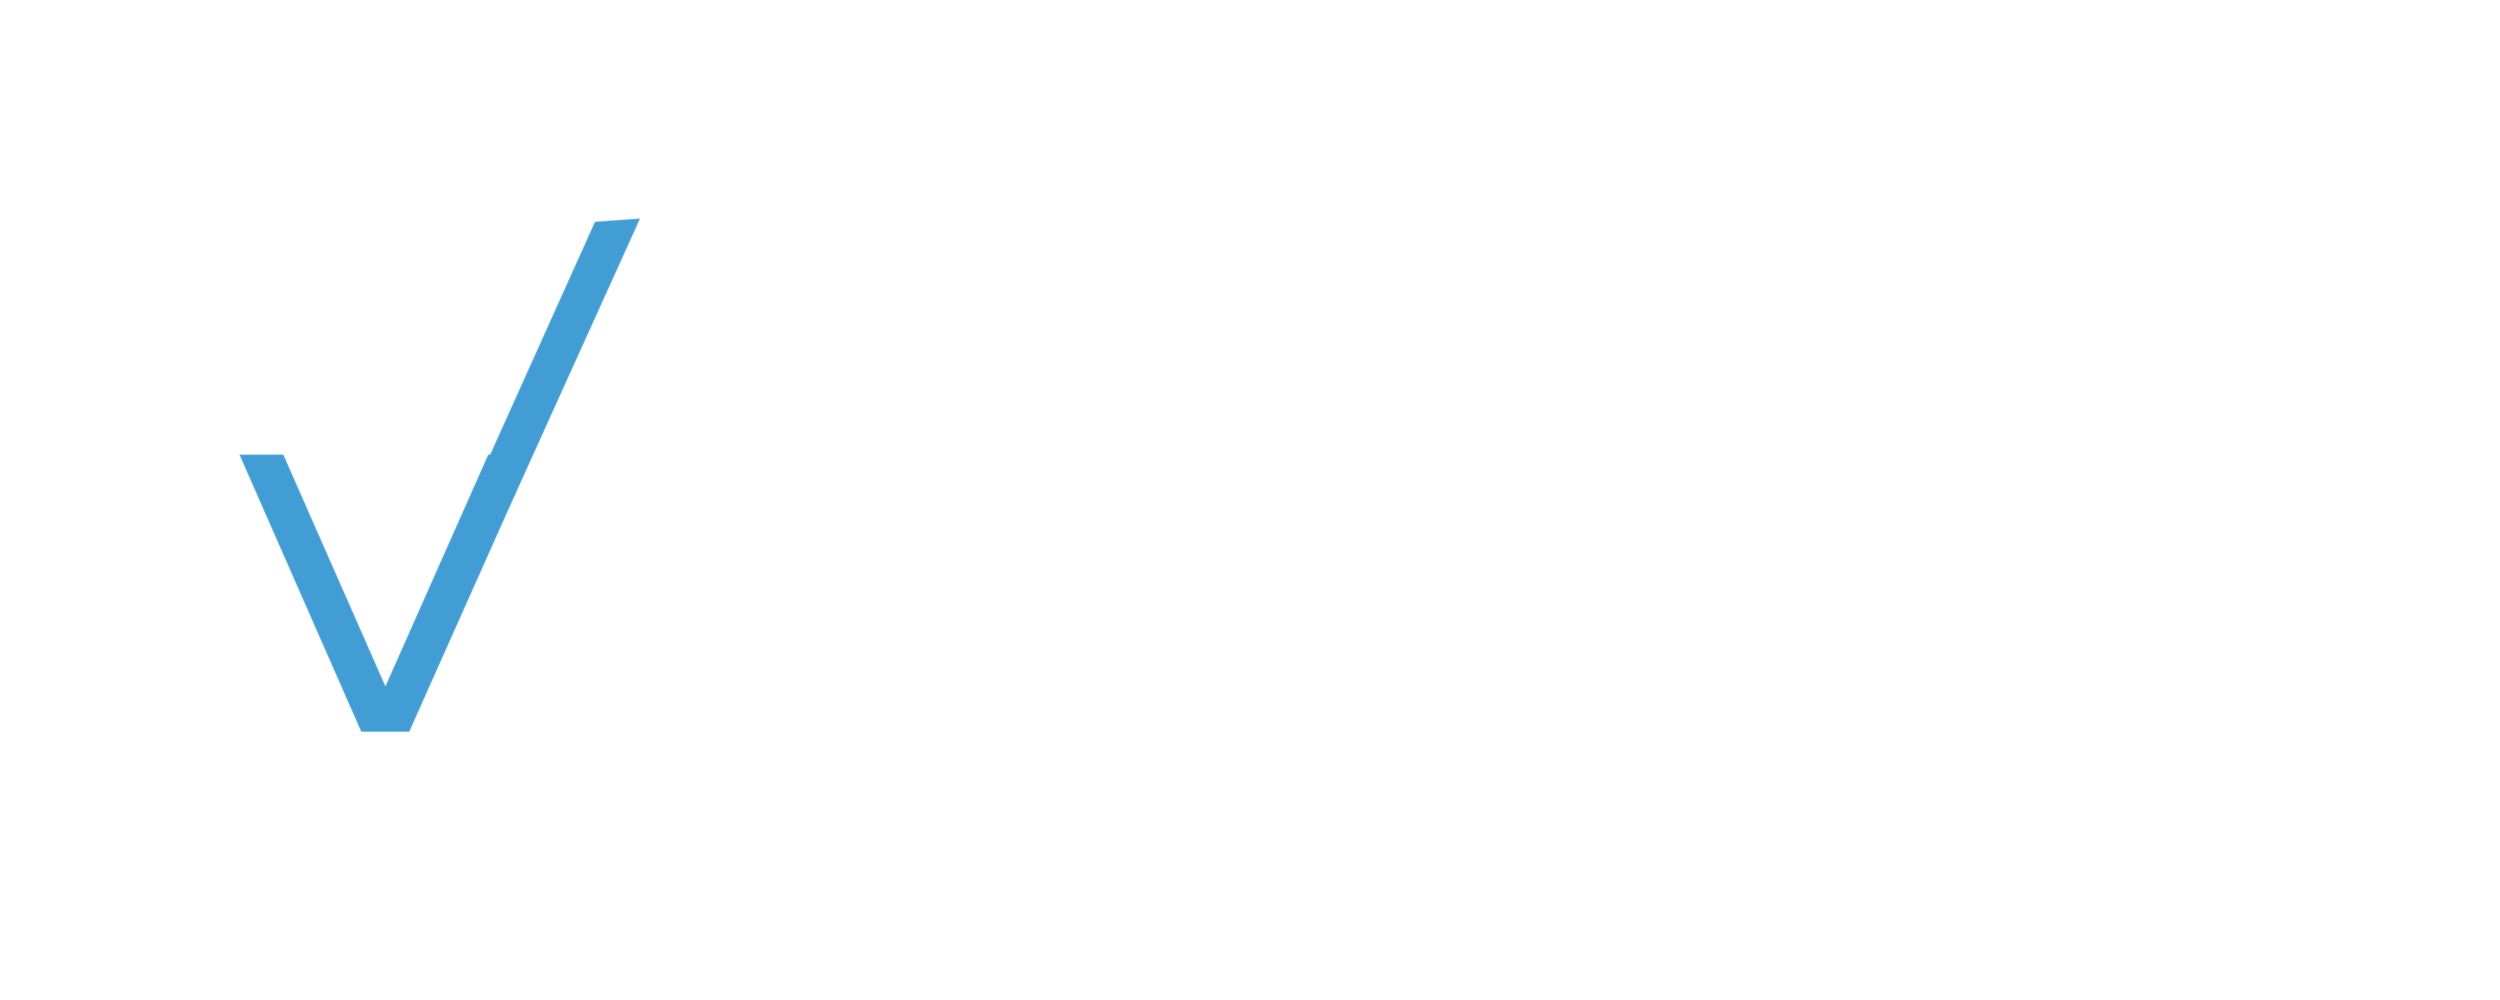 Copy of VCapital (2).png